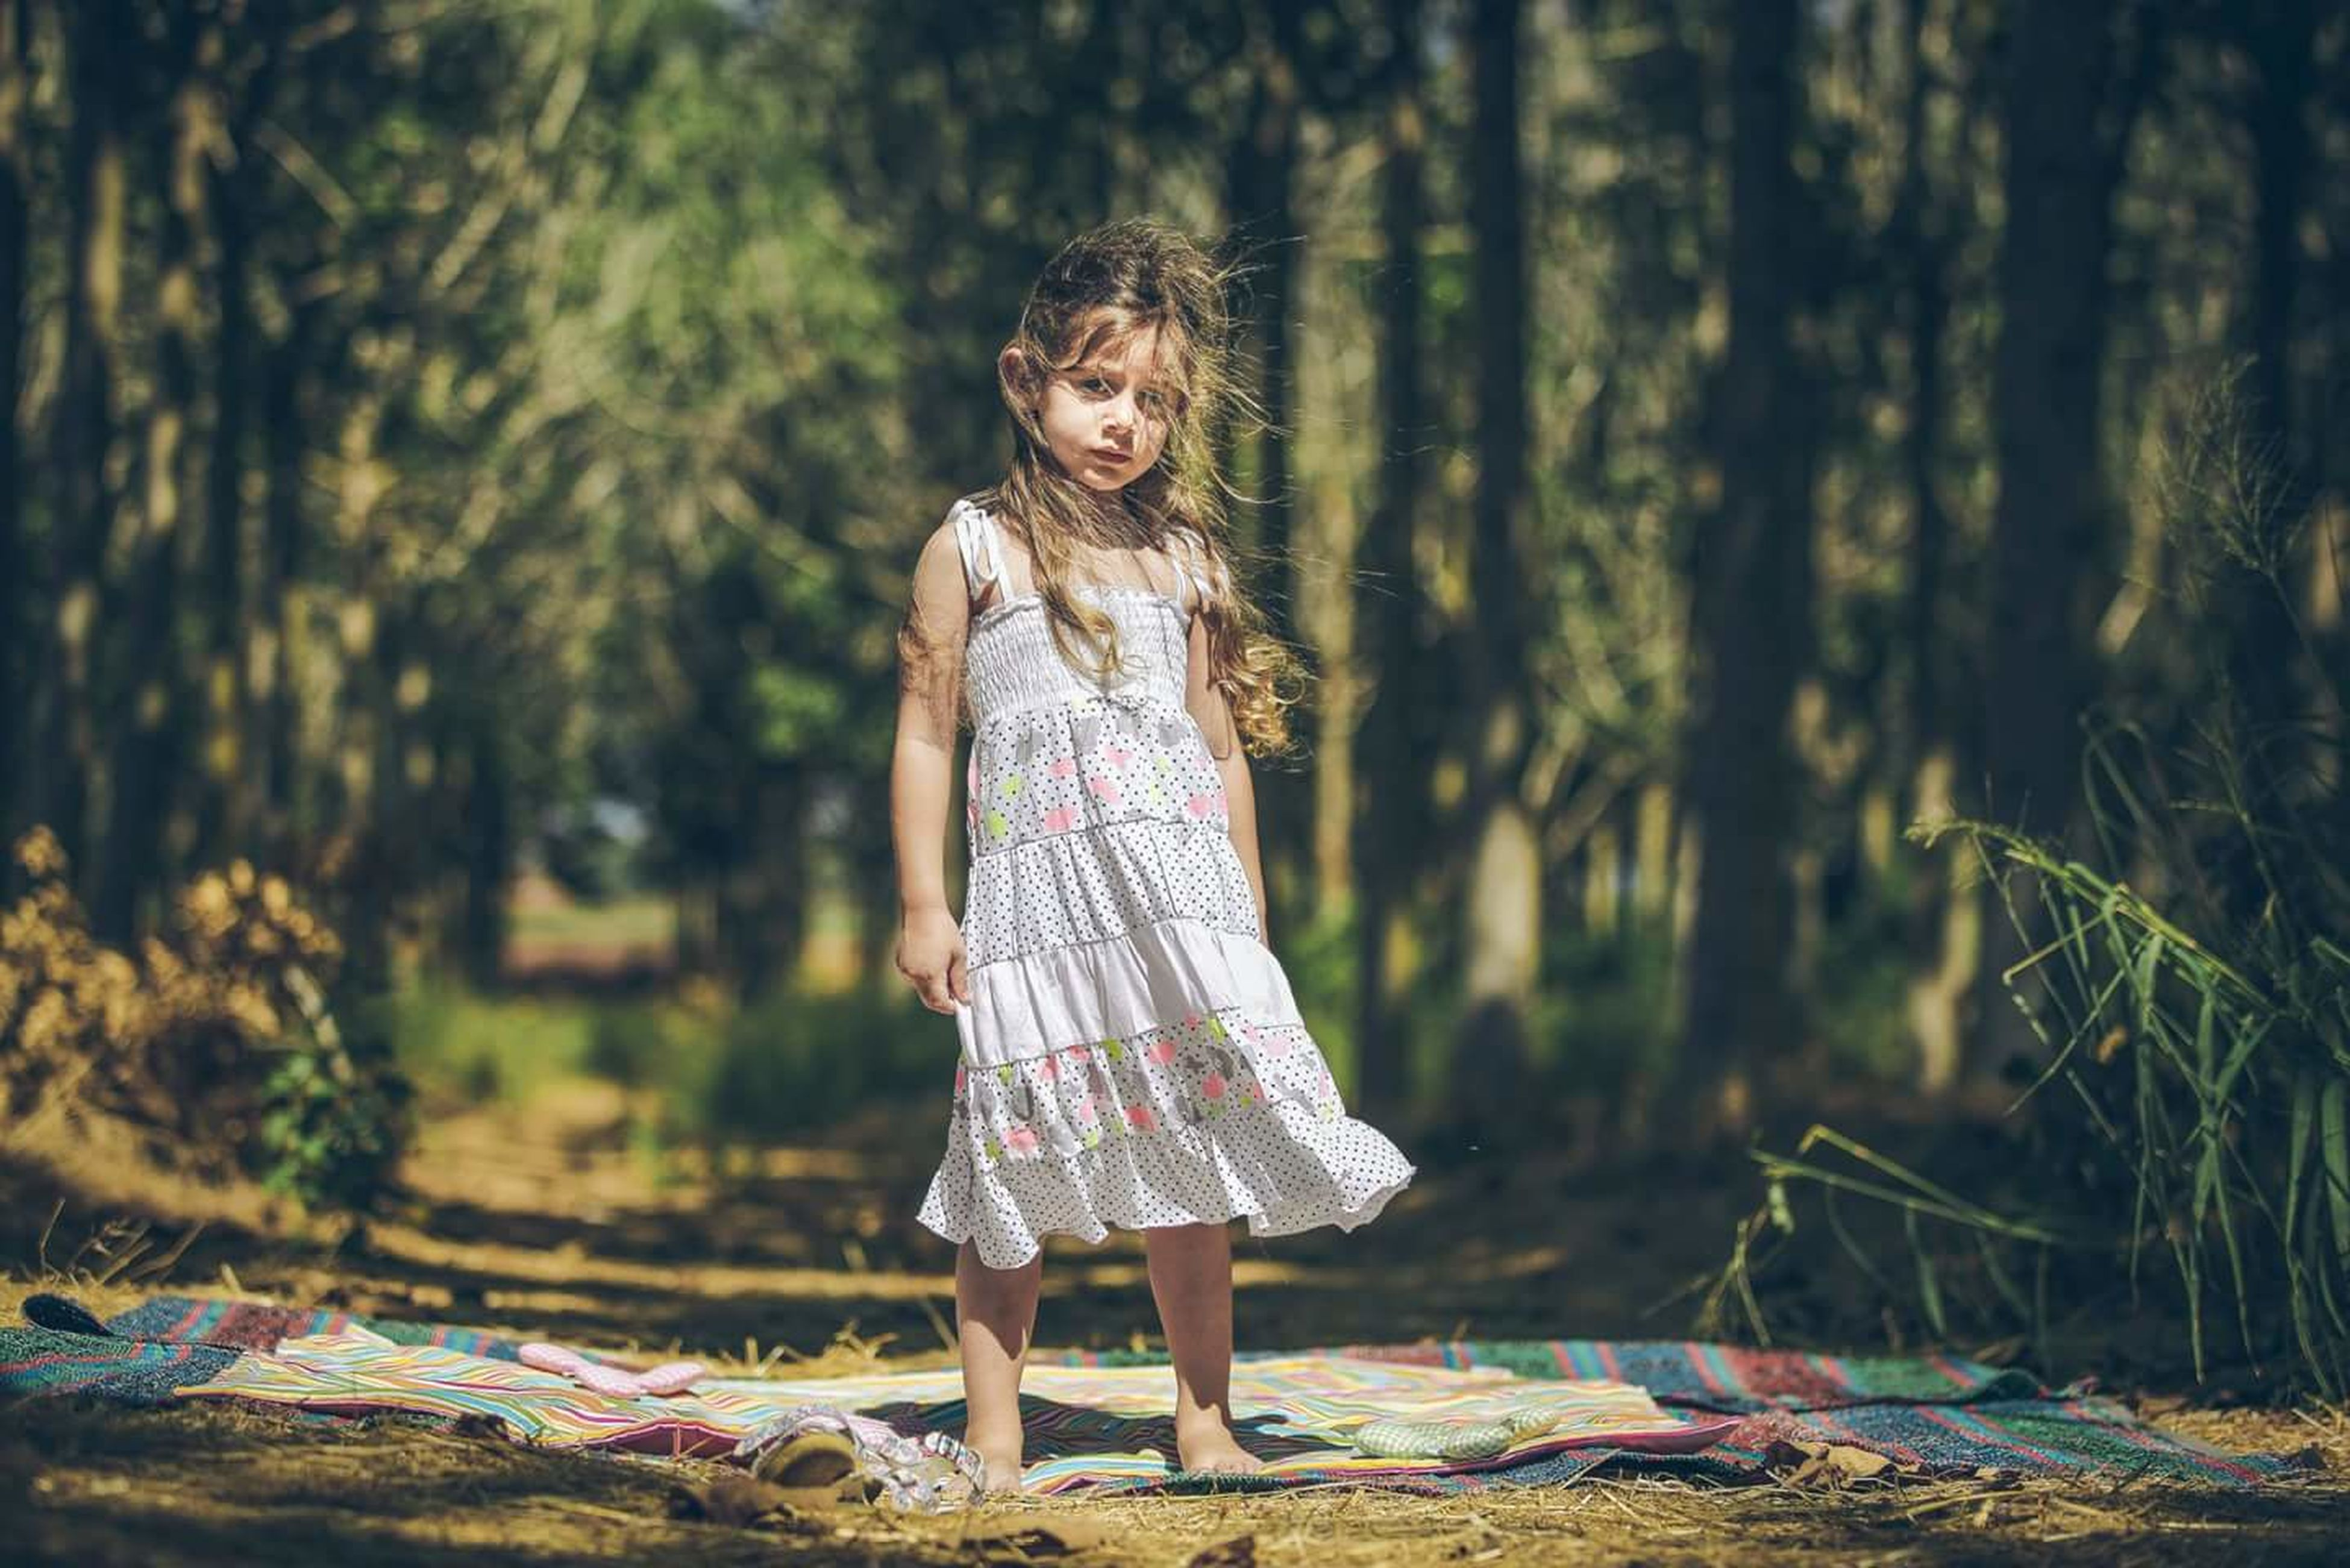 lifestyles, leisure activity, forest, standing, casual clothing, full length, person, tree, young adult, woodland, young women, long hair, outdoors, day, focus on foreground, nature, non-urban scene